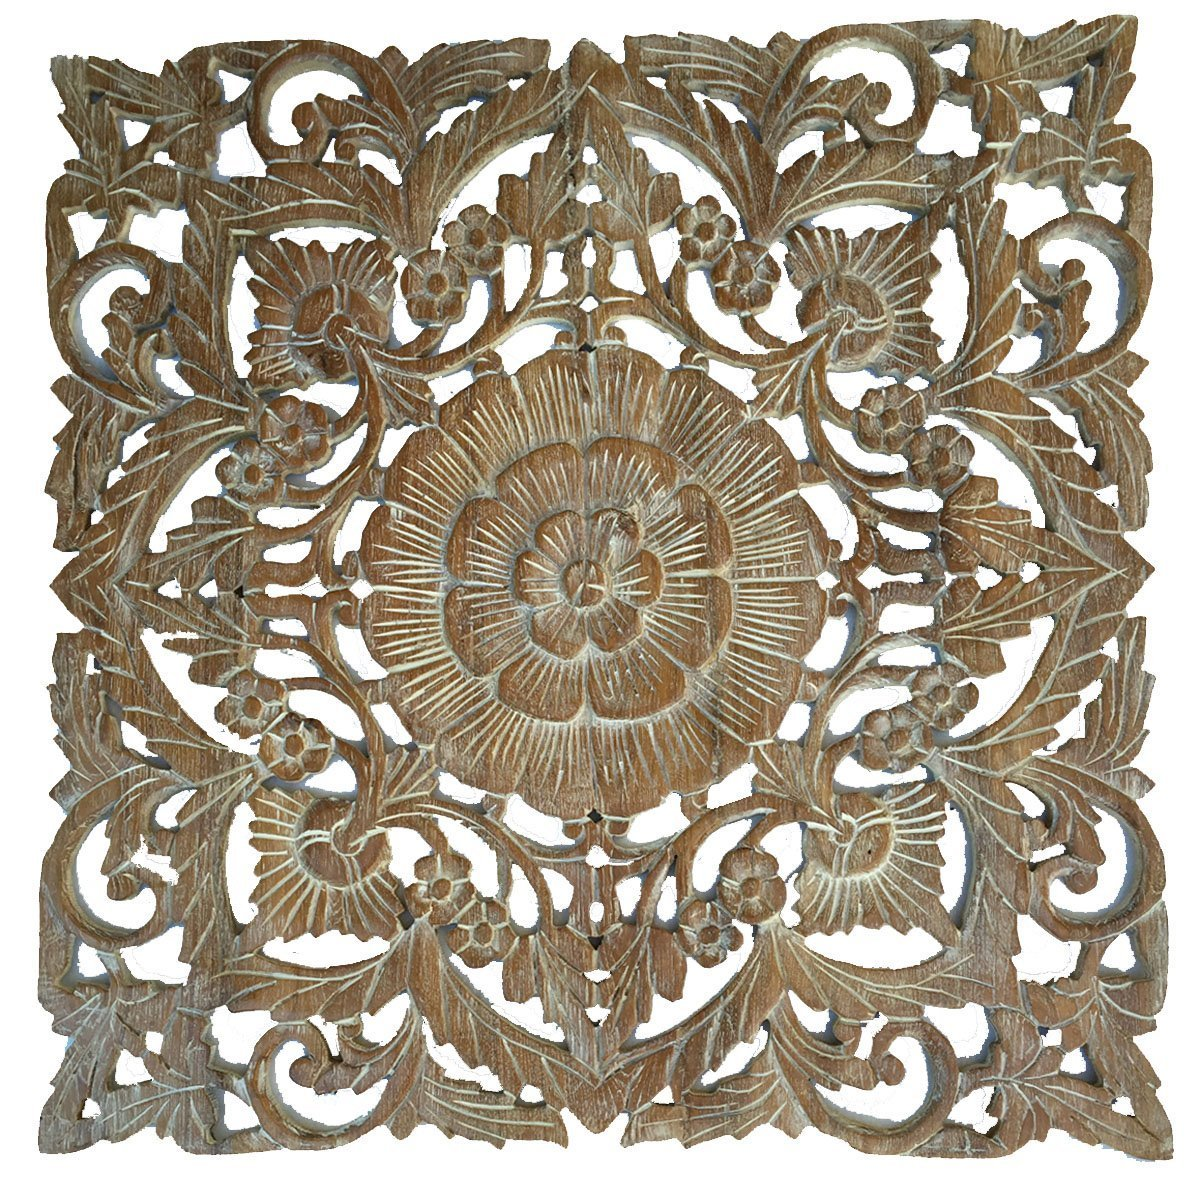 "Large Wood Wall Art- Oriental Carved Wood Wall Decor. Floral Wall Decor. Asian Home Decoration. Rustic Home Decor. Size 24""x24""x0.5"" (Light White Wash)"